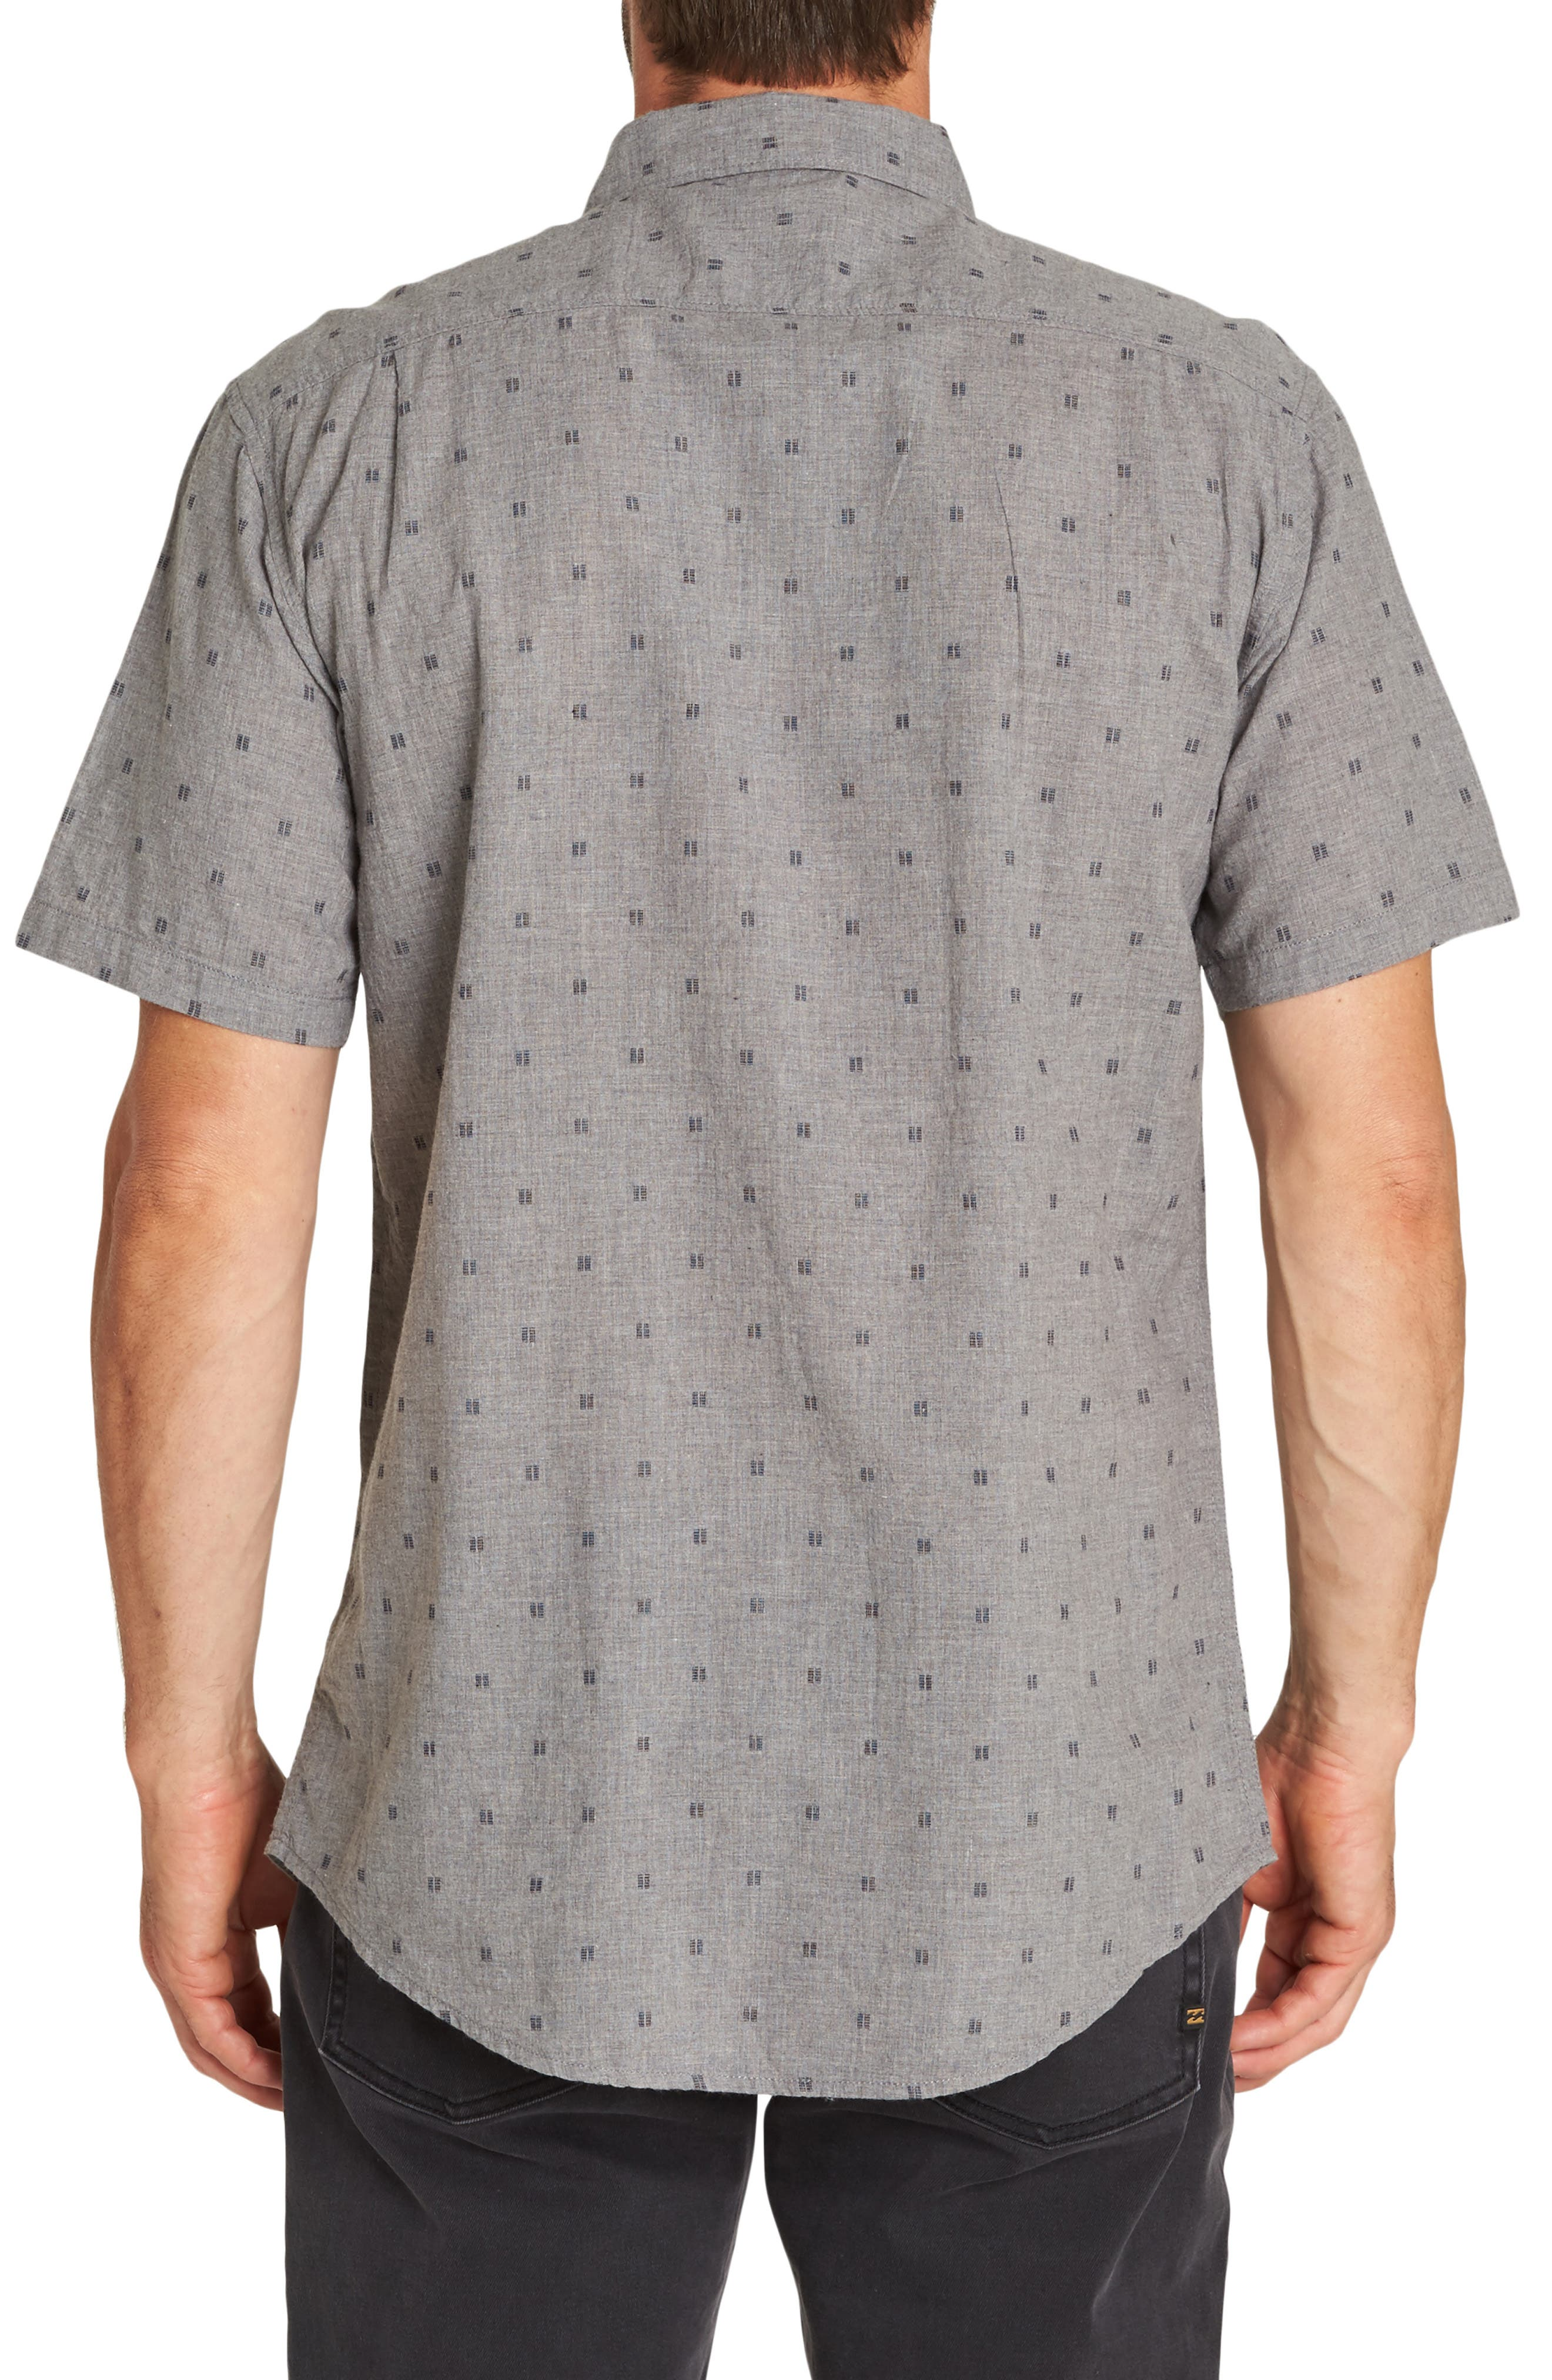 All Day Jacquard Shirt,                             Alternate thumbnail 2, color,                             PEWTER HEATHER